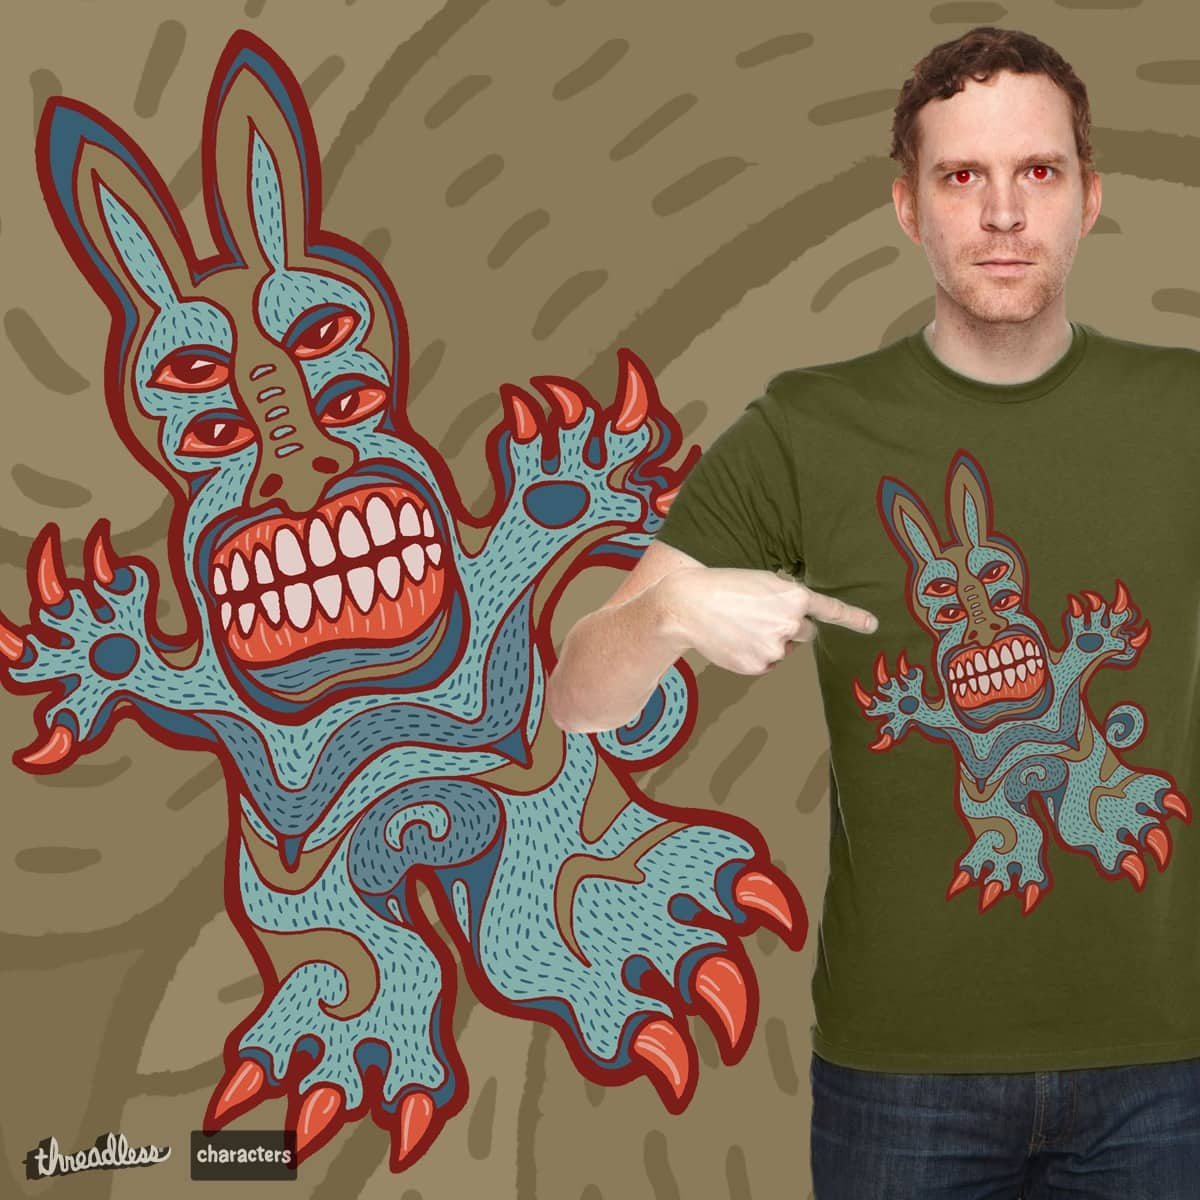 Raving Zombie Rabbit by dsds on Threadless